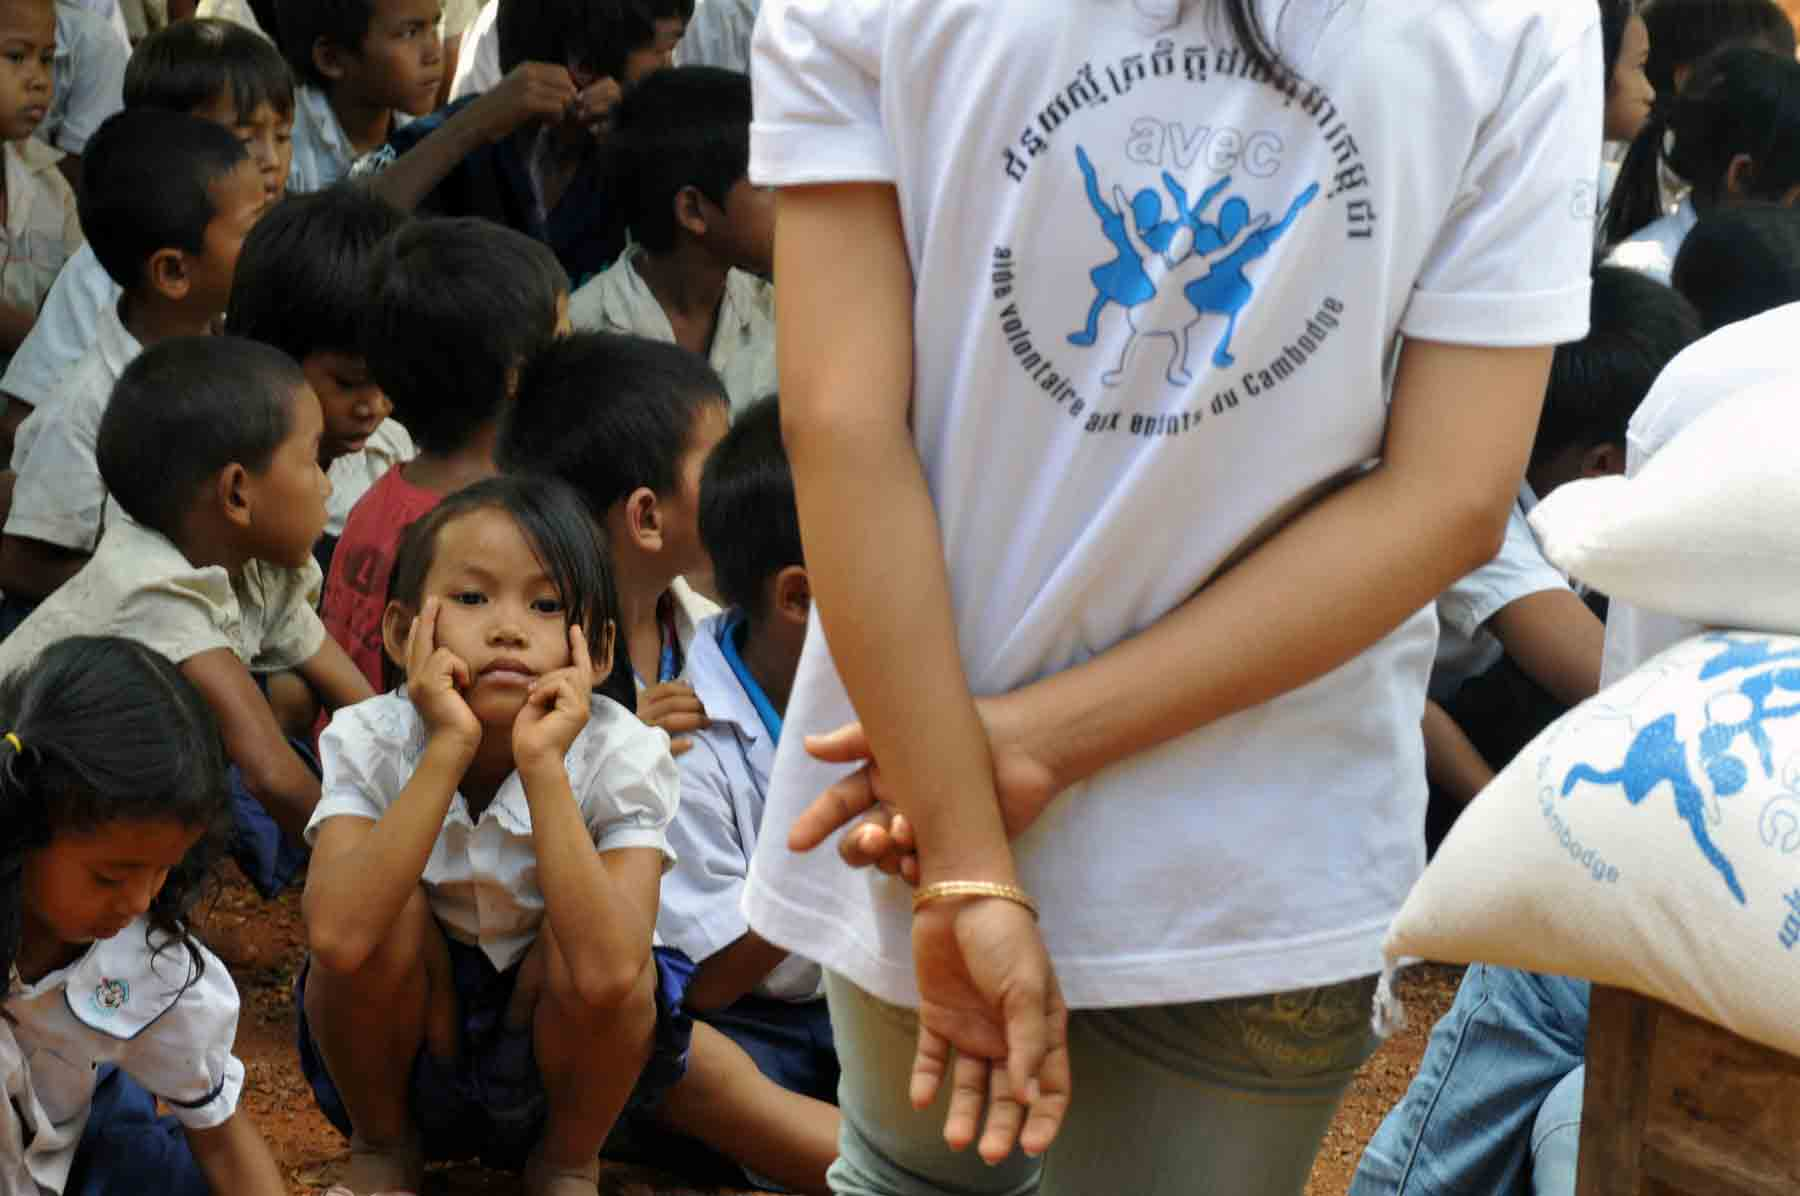 Young volunteer in Cambodia during an education-related humanitarian action with hundreds of children in a public school.